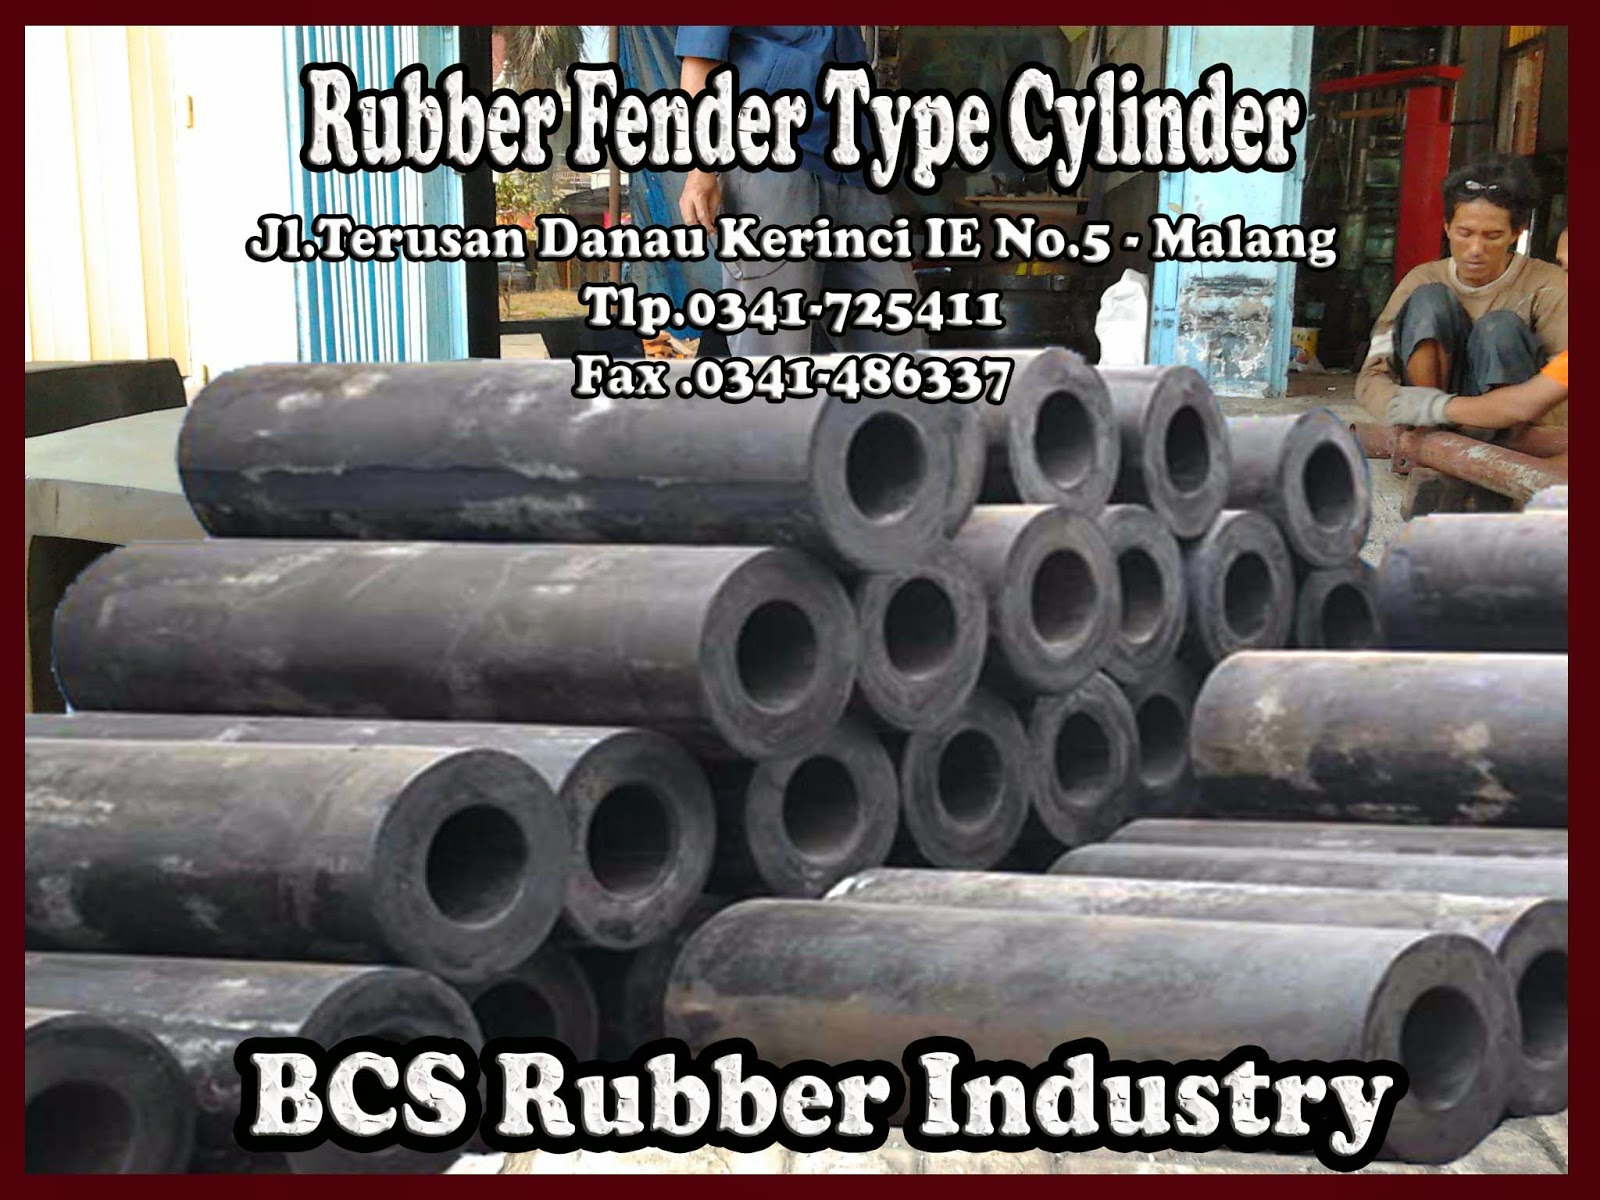 Rubber Fender Type Cylinder